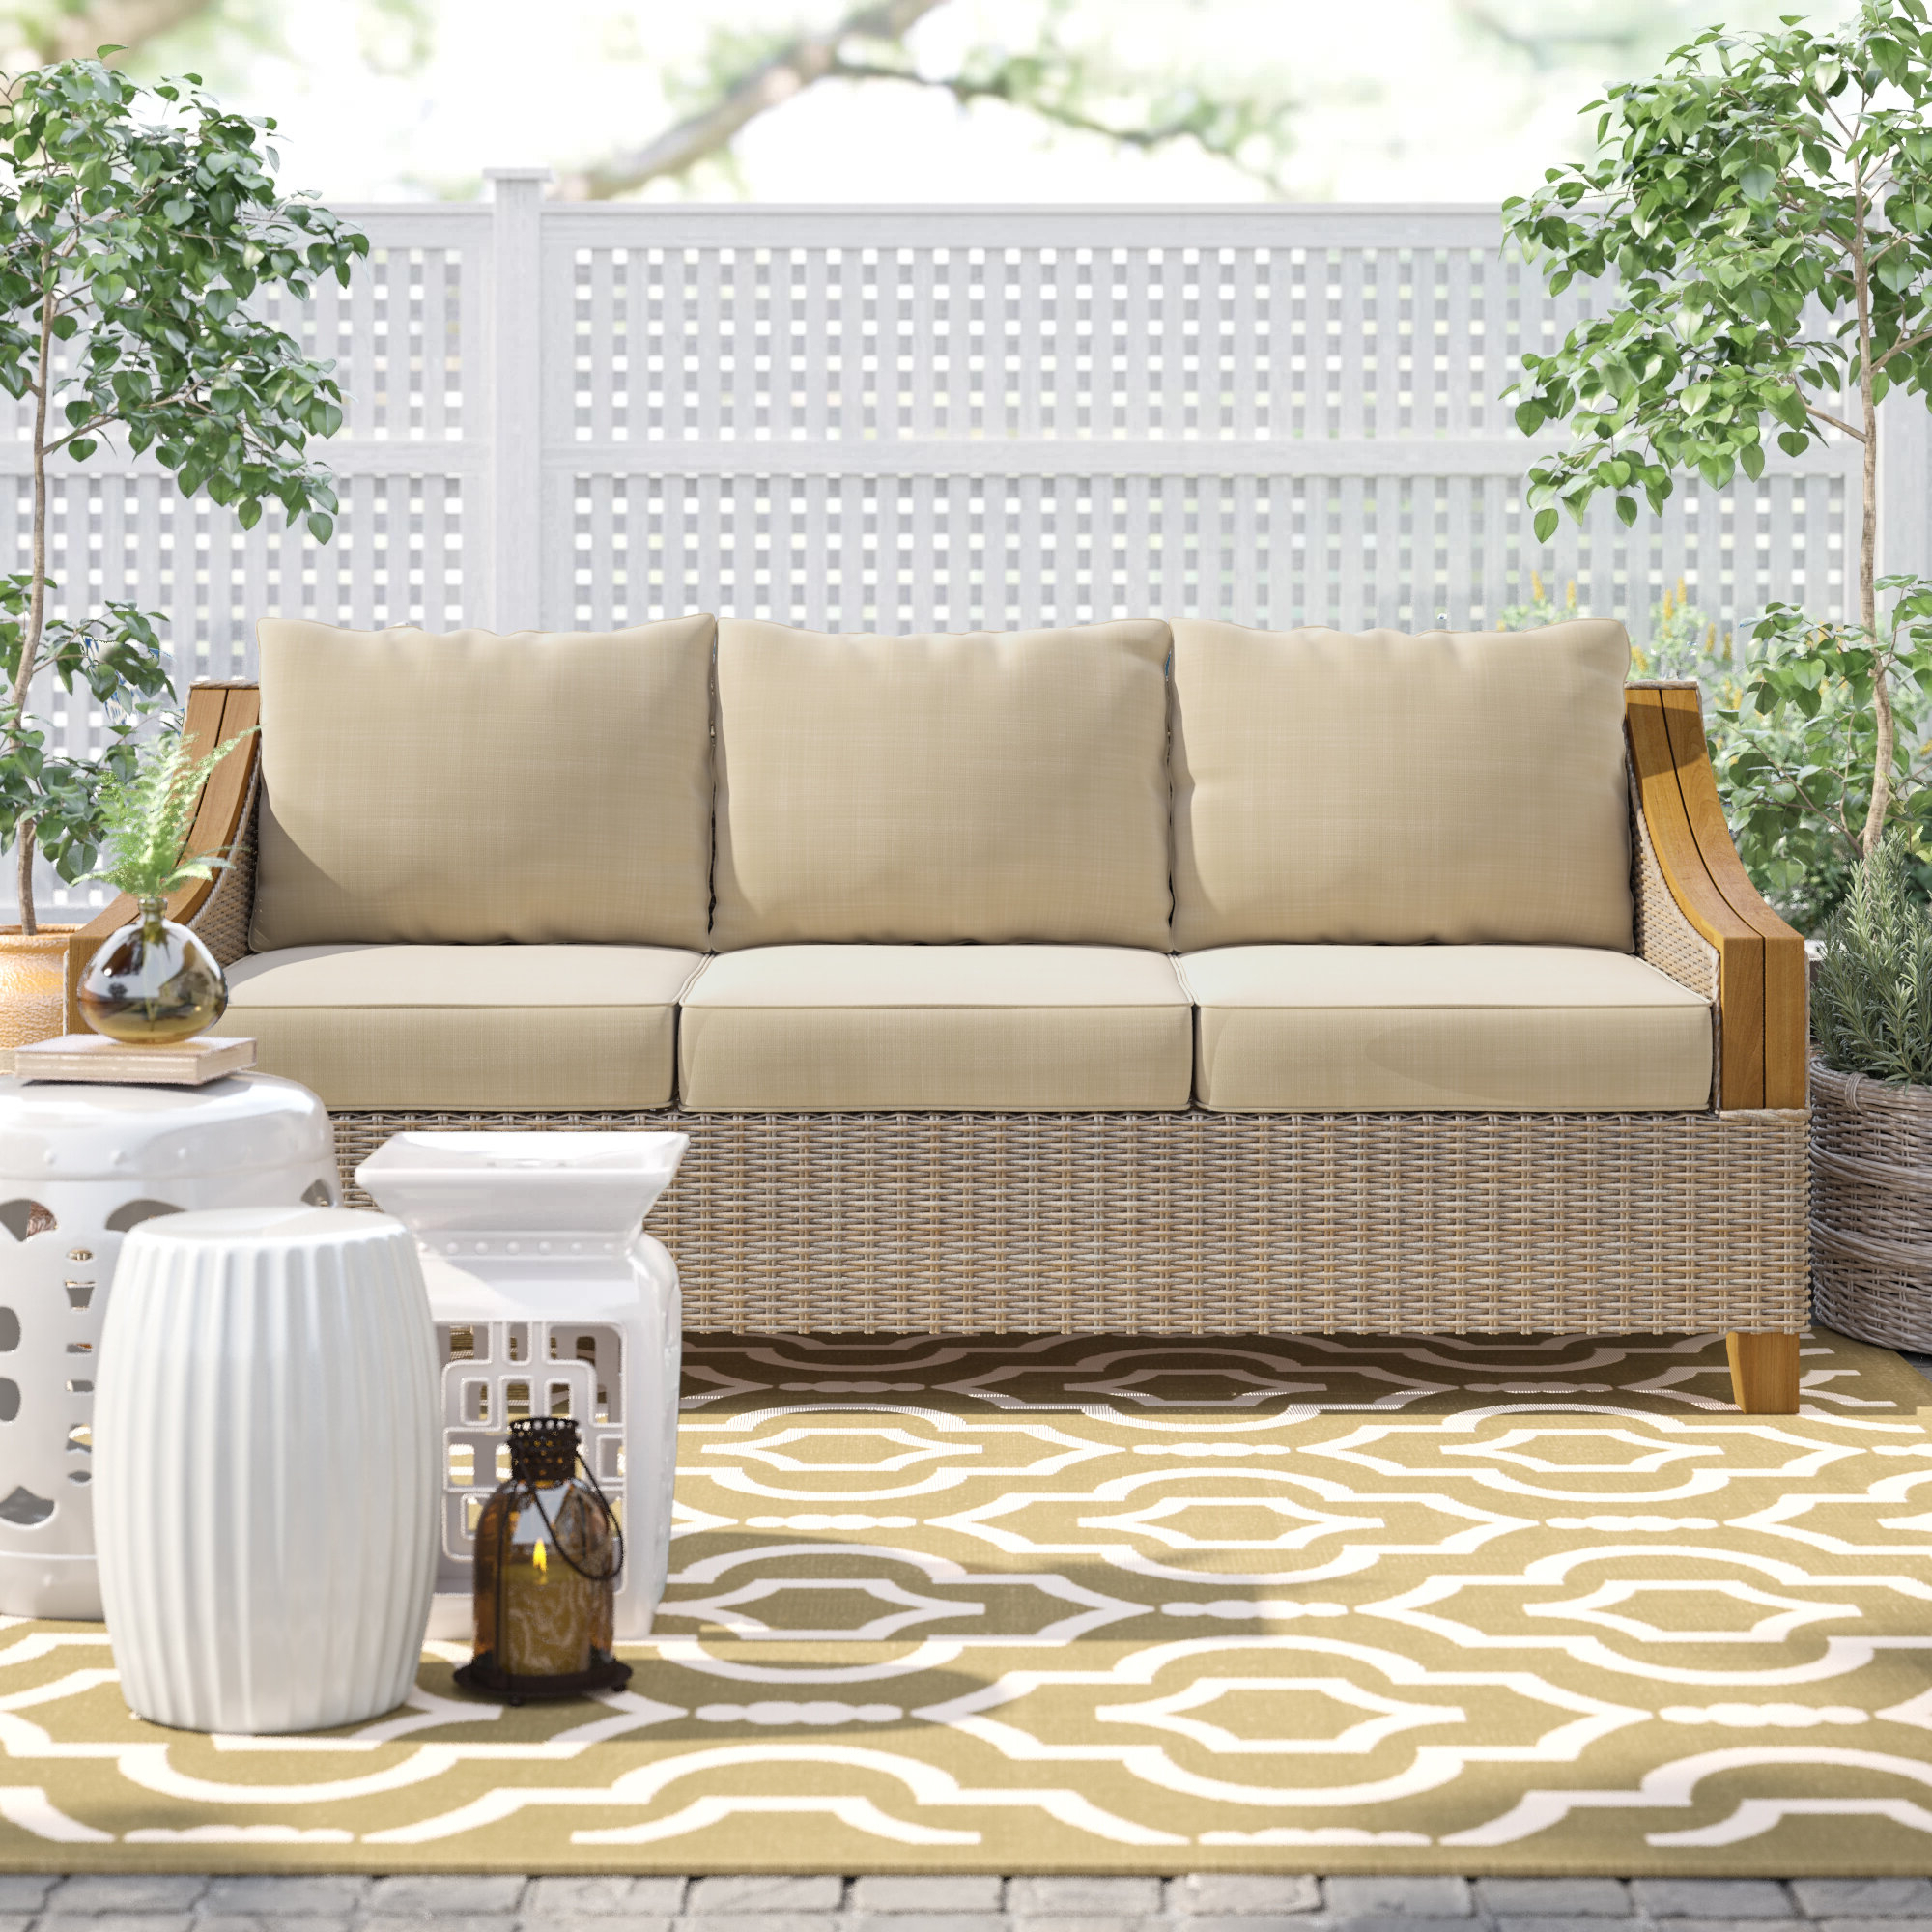 Famous O'kean Teak Patio Sofas With Cushions For Kincaid Teak Patio Sofa With Sunbrella Cushions (View 16 of 25)